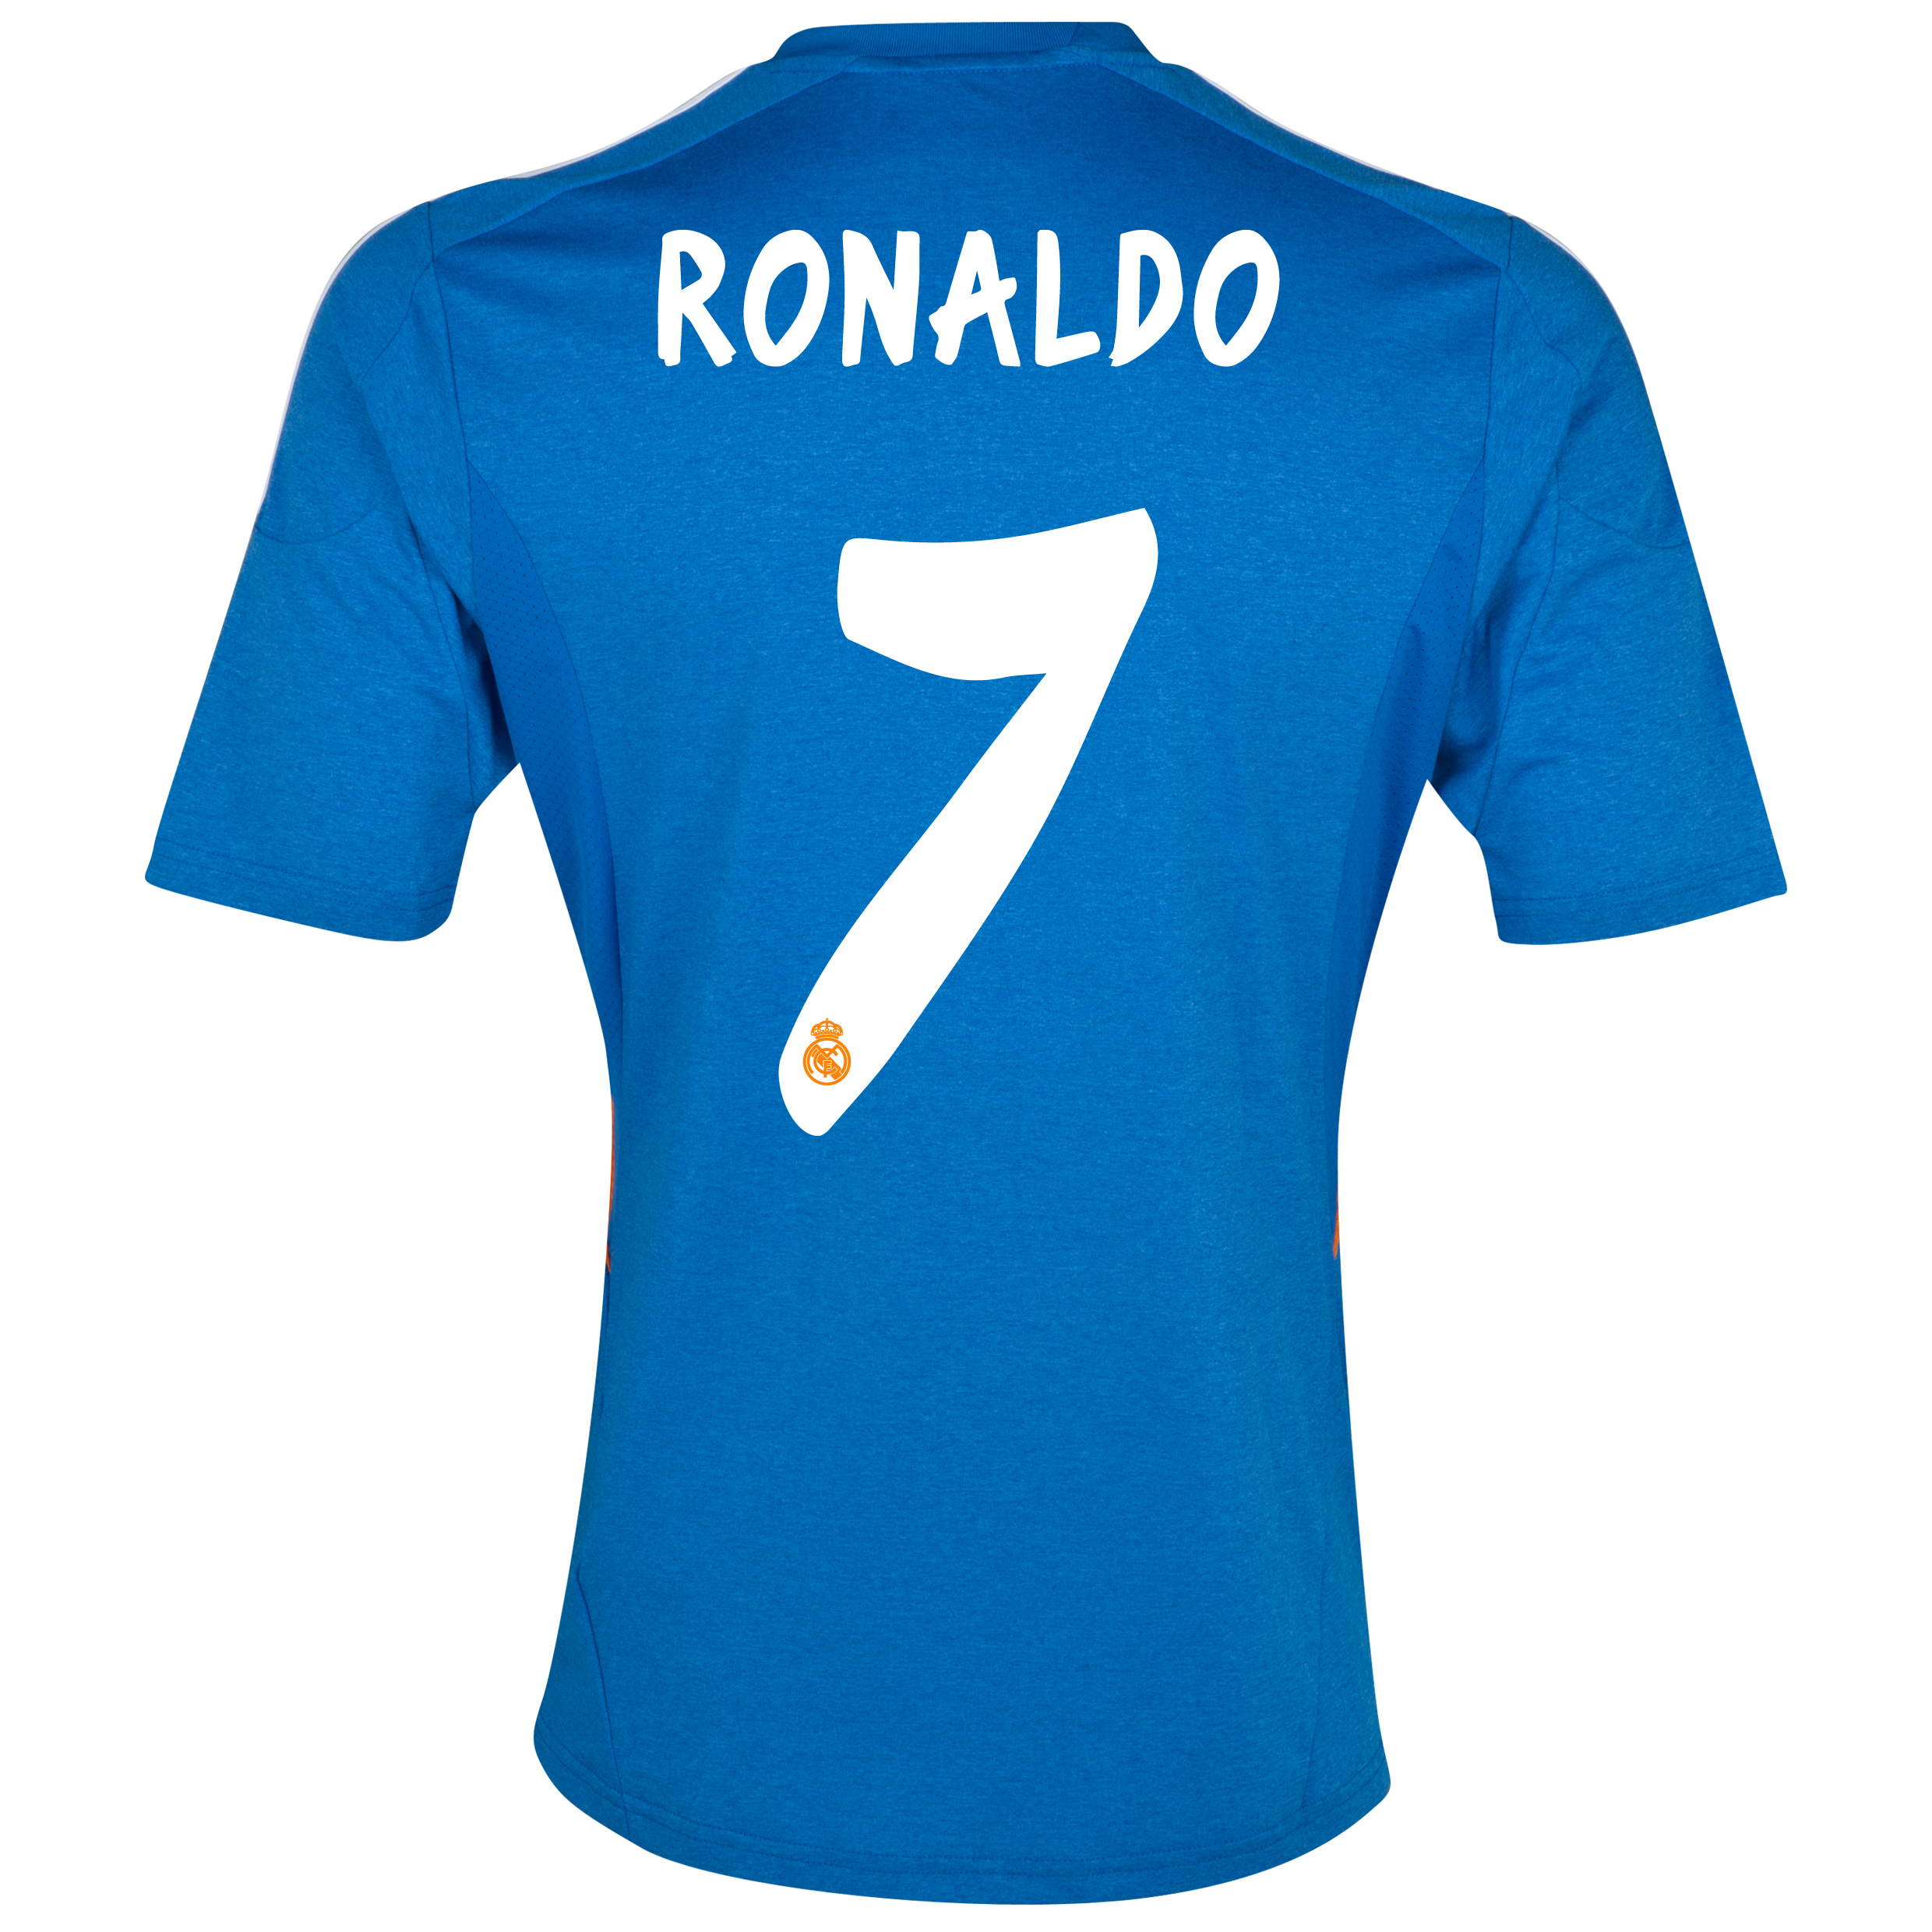 Real Madrid Away Shirt 2013/14 with Ronaldo 7 printing